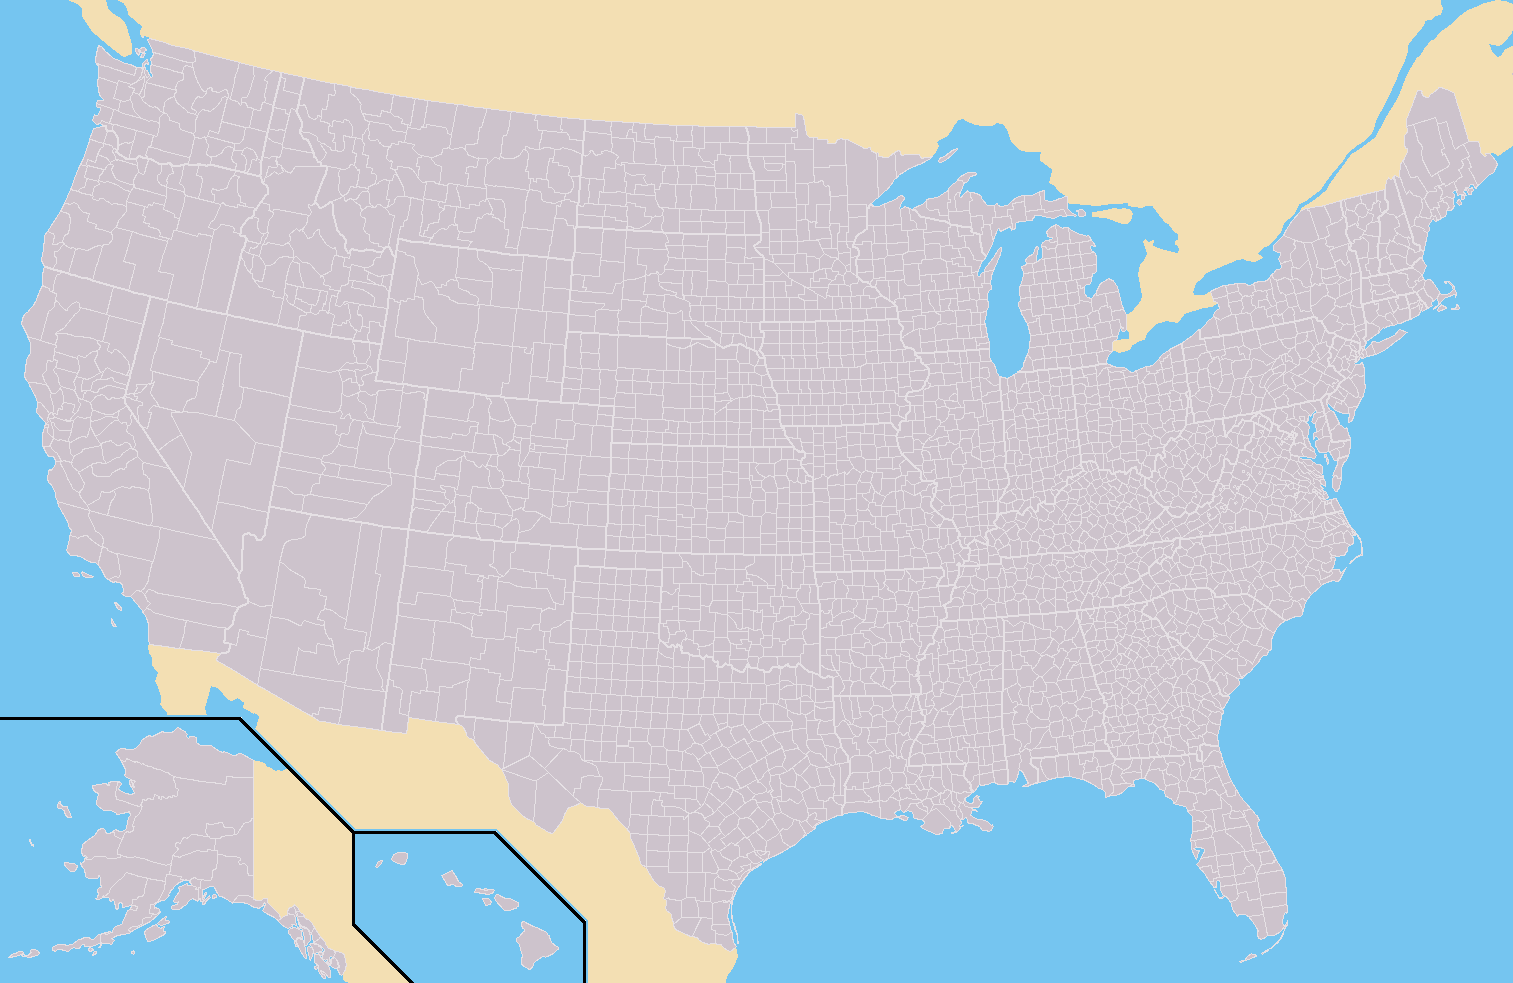 FileUSA Countiessvg Wikimedia Commons US County Outline Maps - Us counties in excel